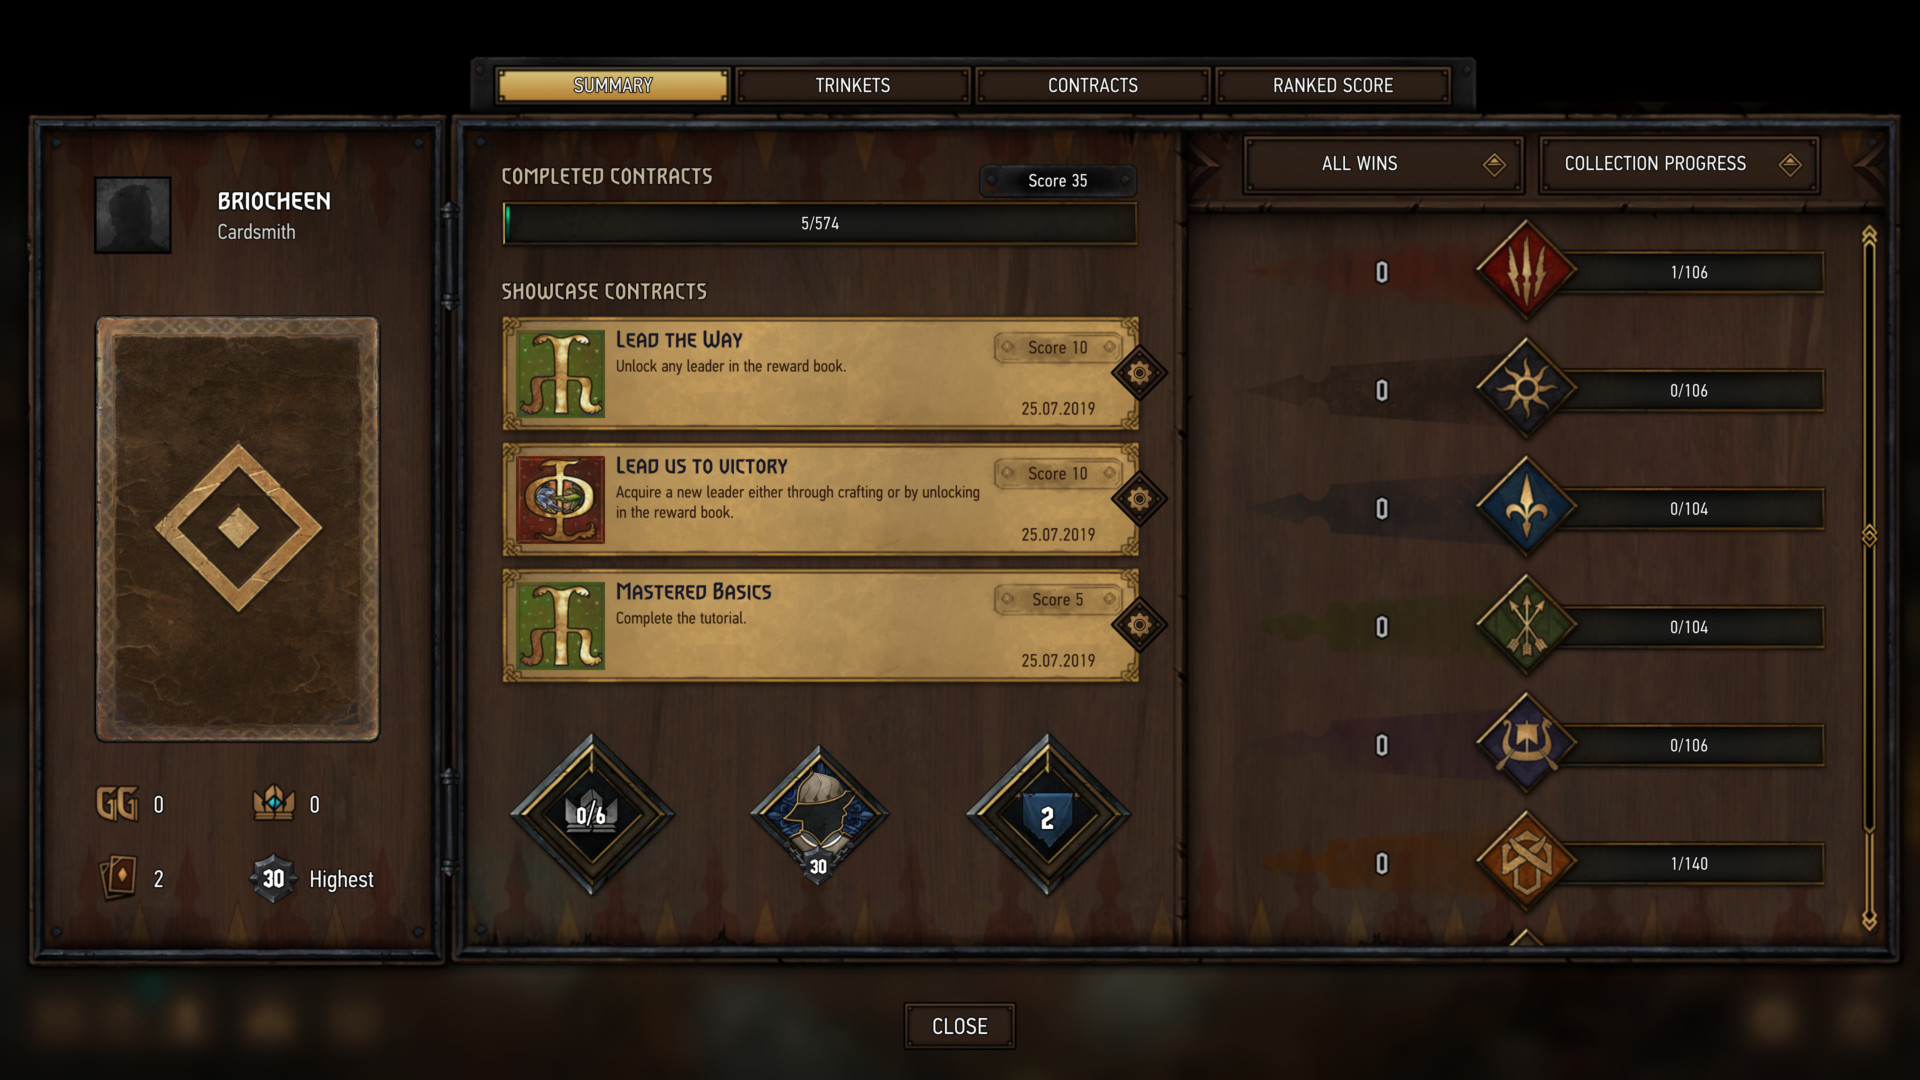 Profile summary screenshot of Gwent: The Witcher Card Game video game interface.